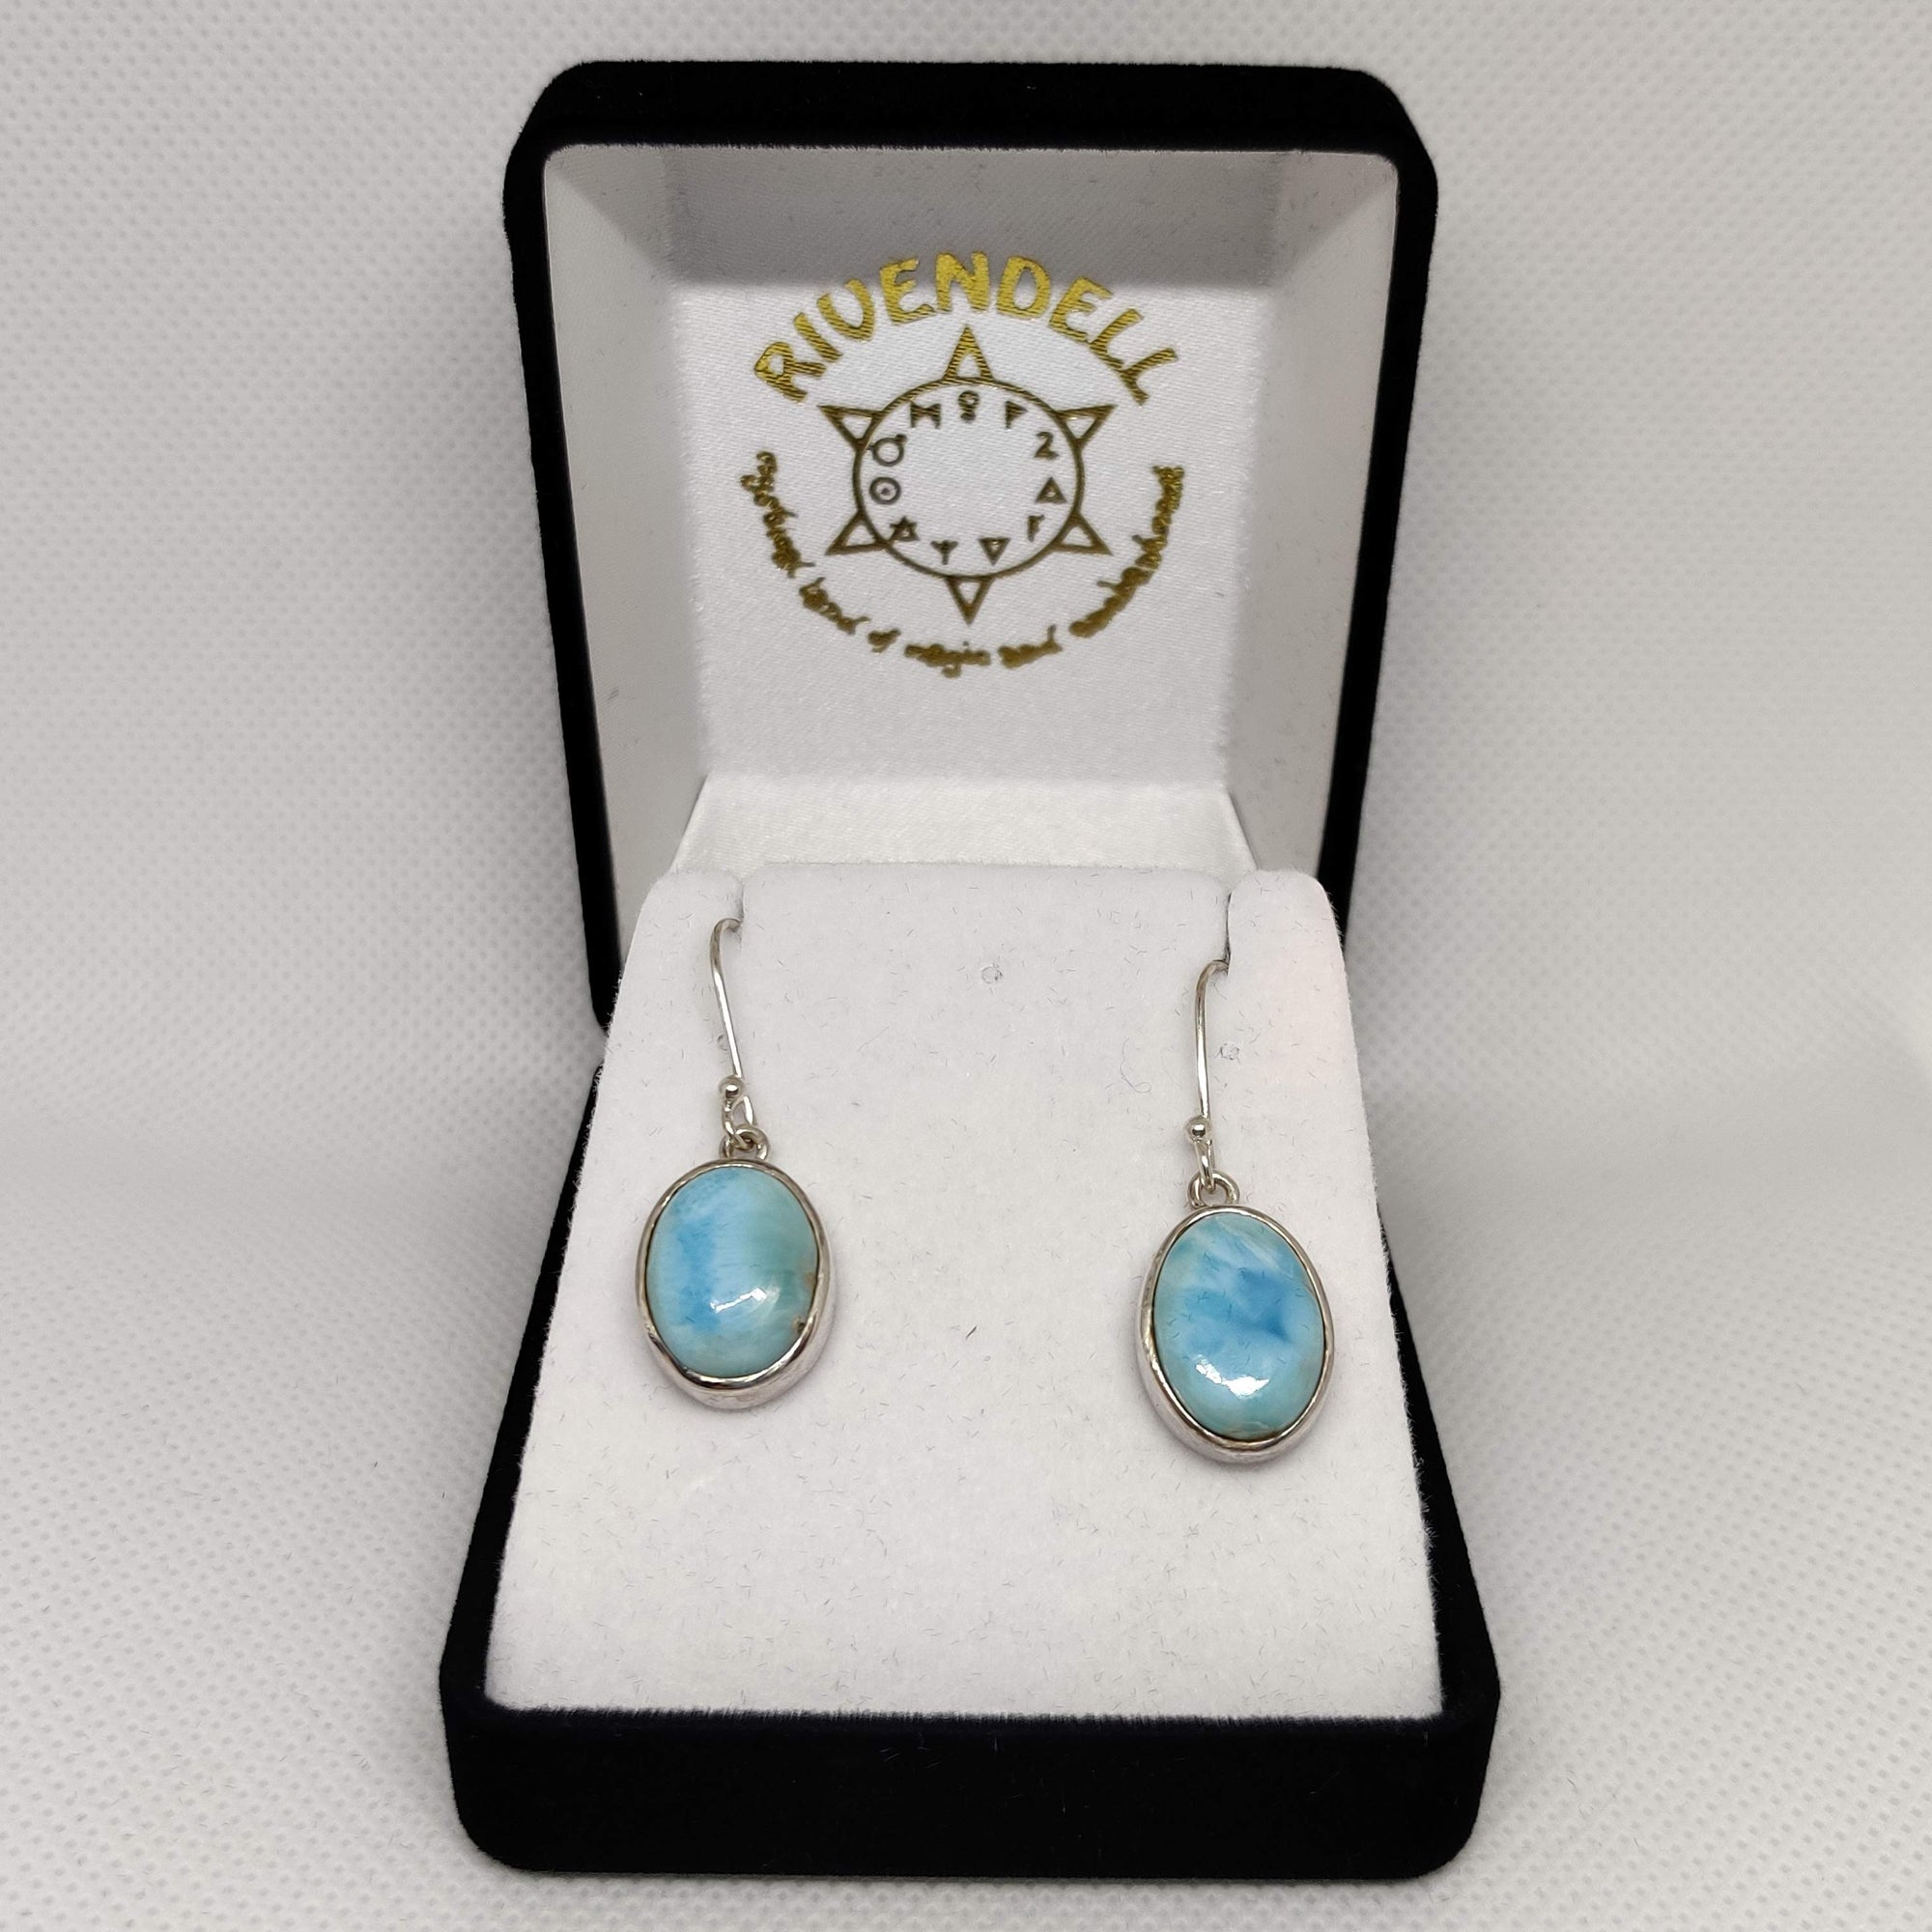 Oval Larimar 925 Sterling Silver Earrings - Rivendell Shop